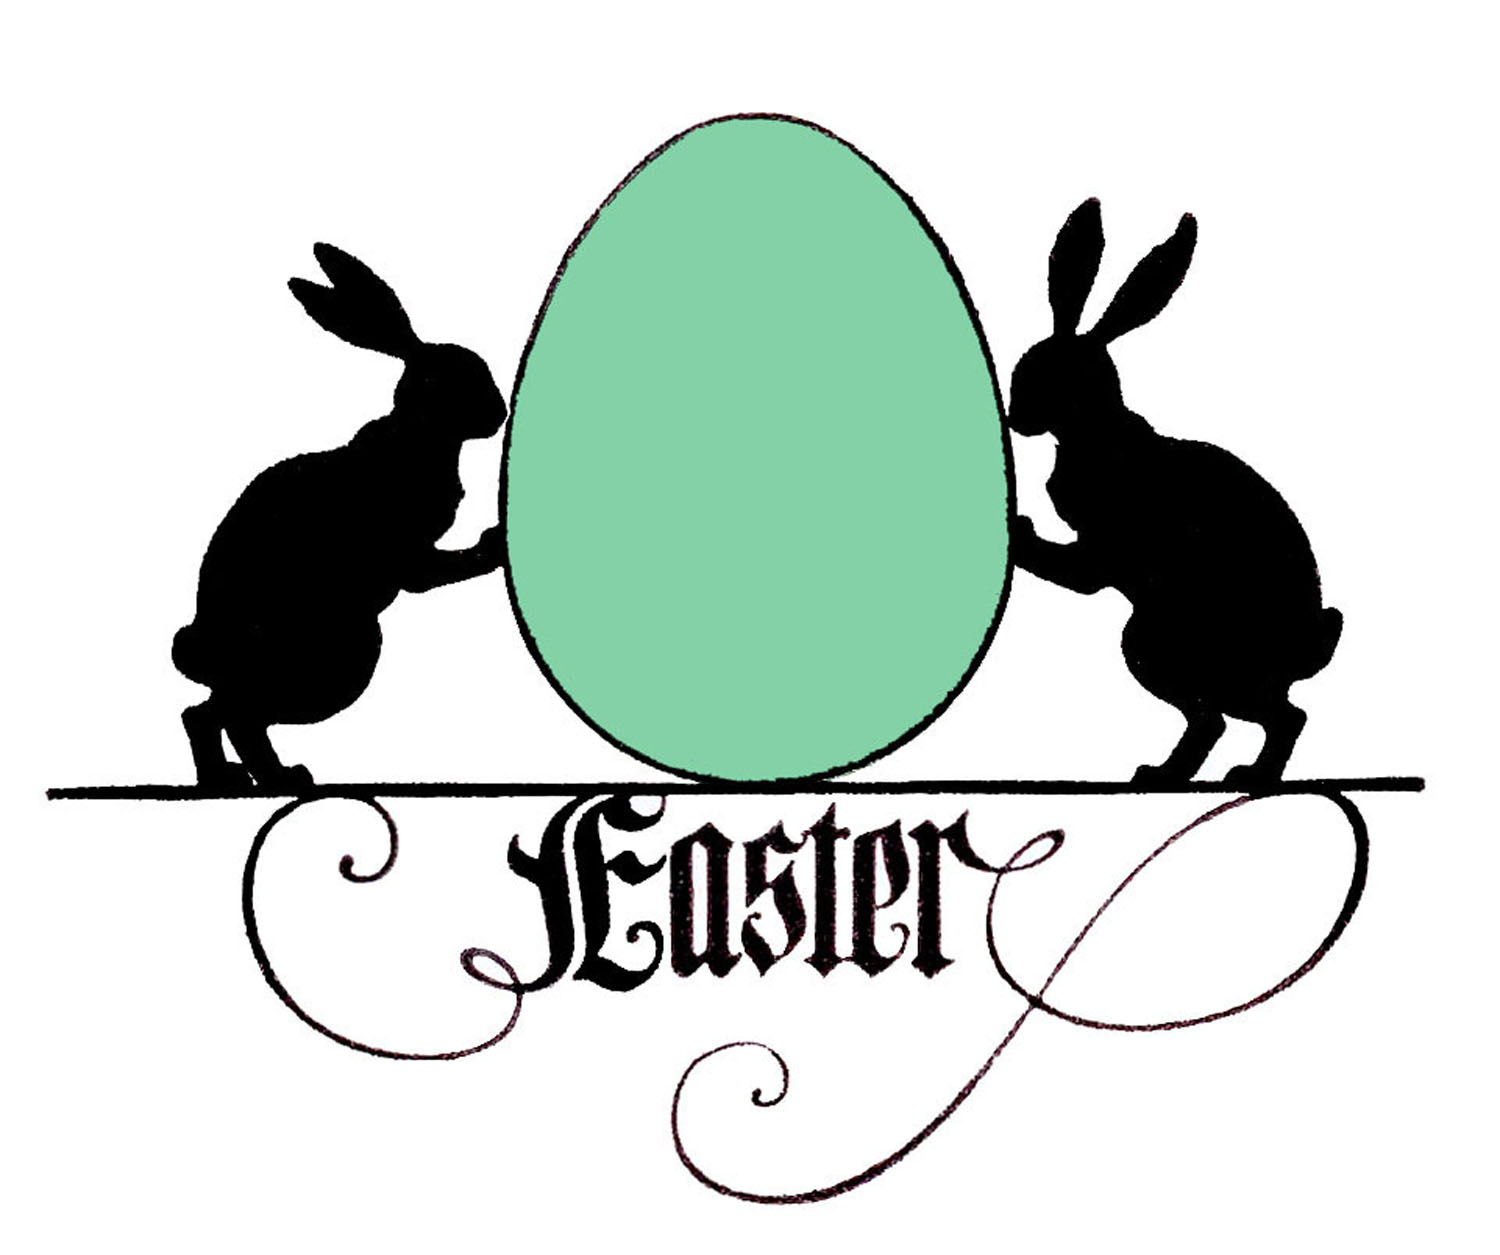 Easter bunny silhouette. Rabbit silhouettes and